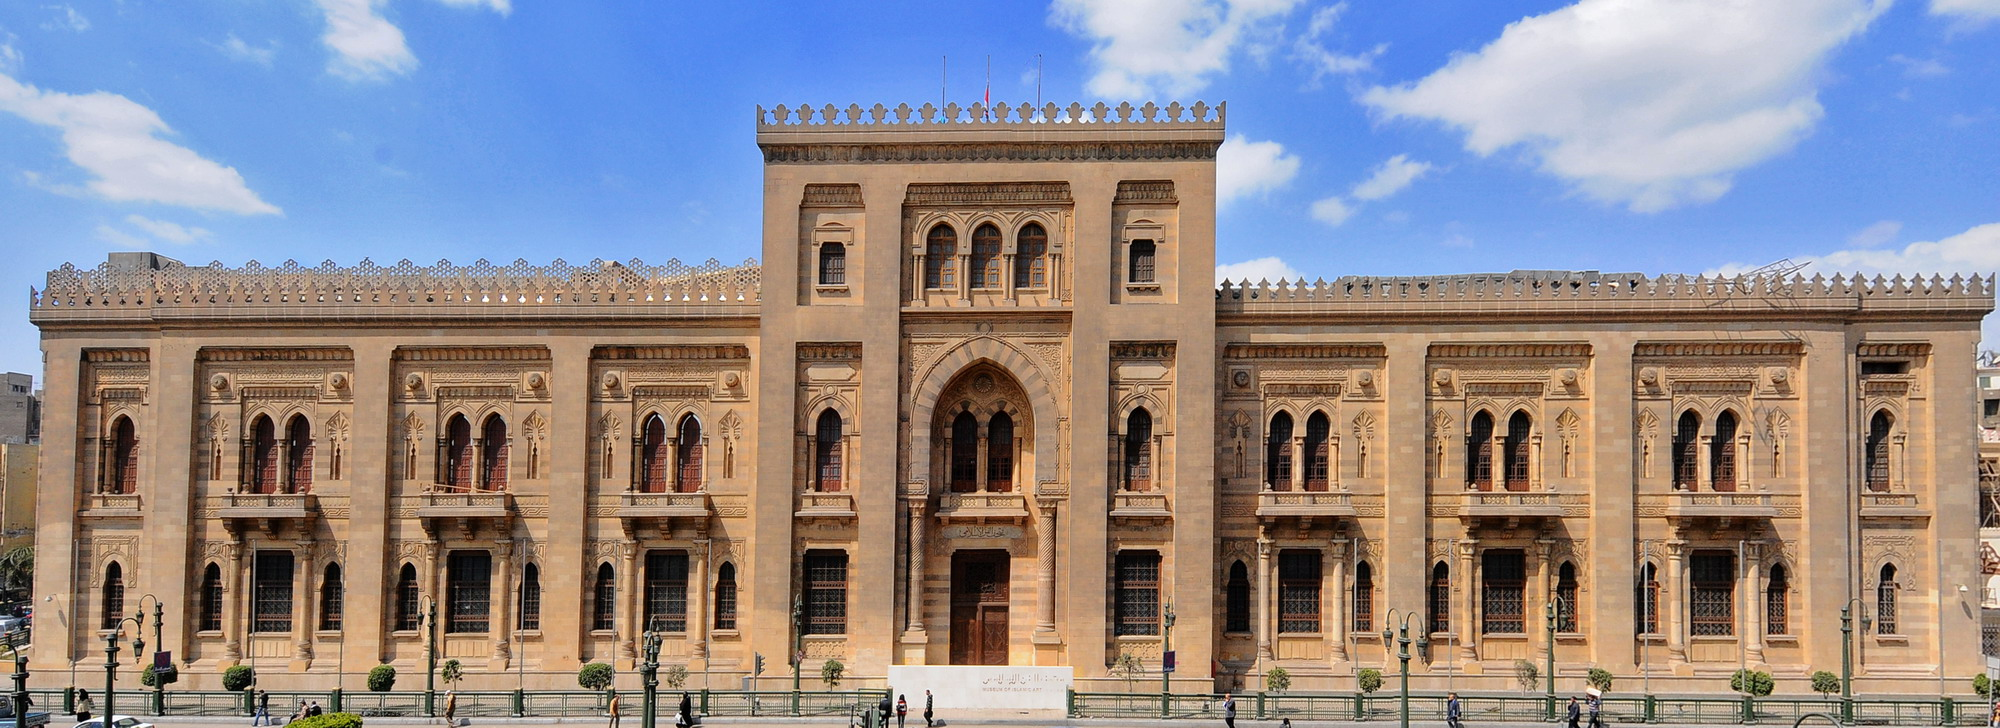 best image for the islamic cairo museum